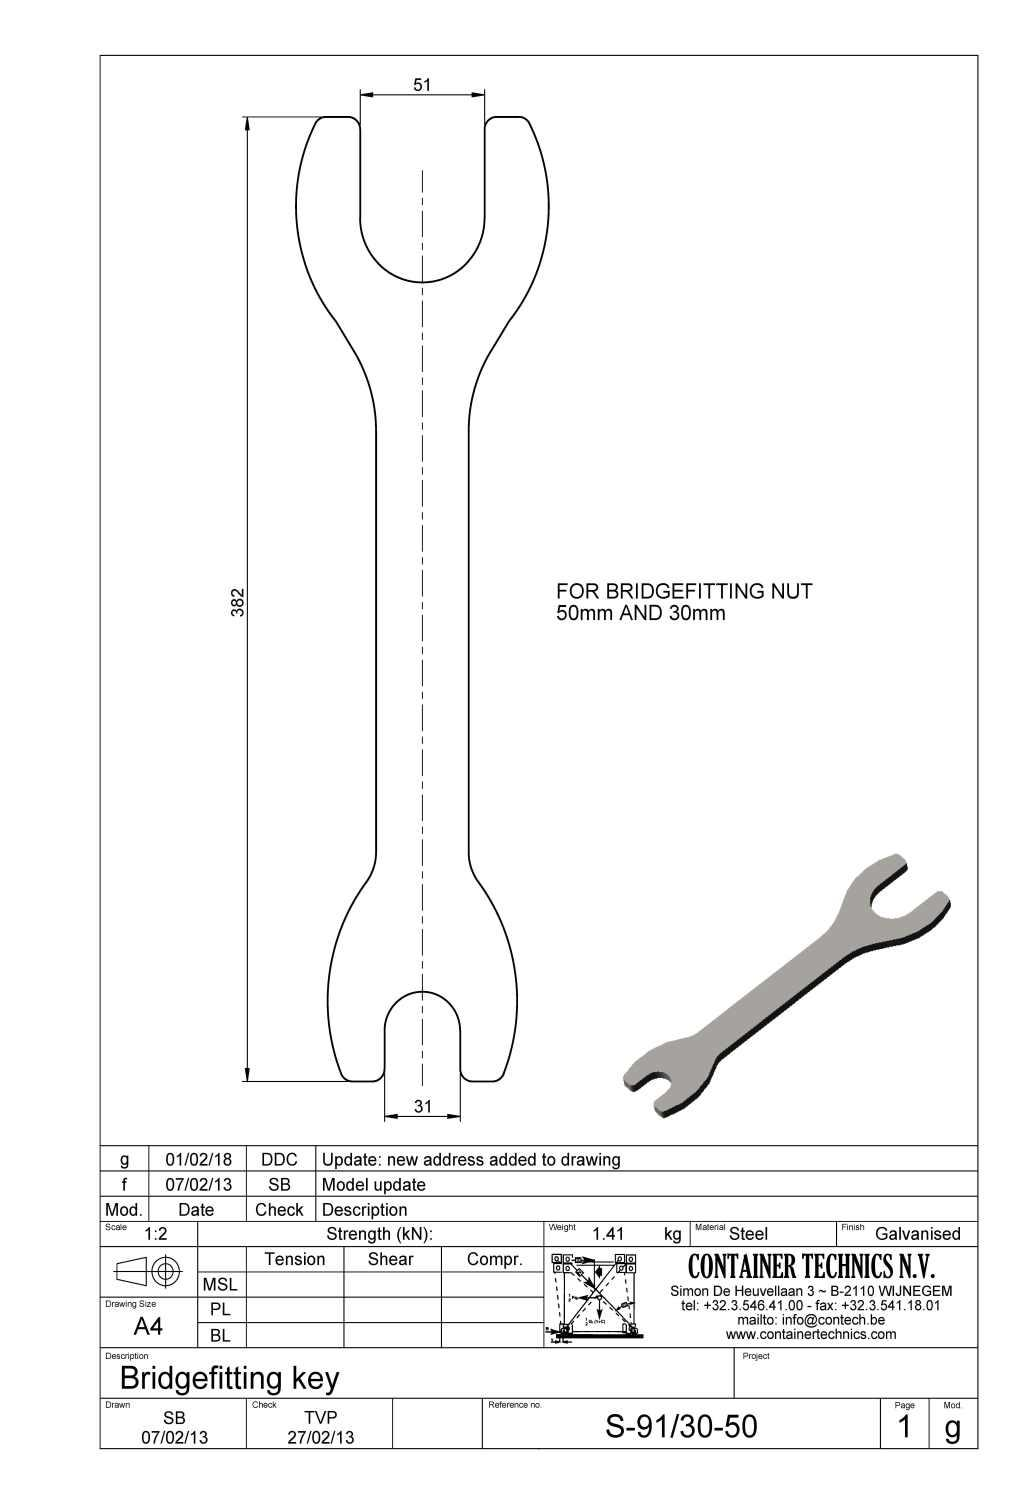 S-91 Spanner for bridgefitting